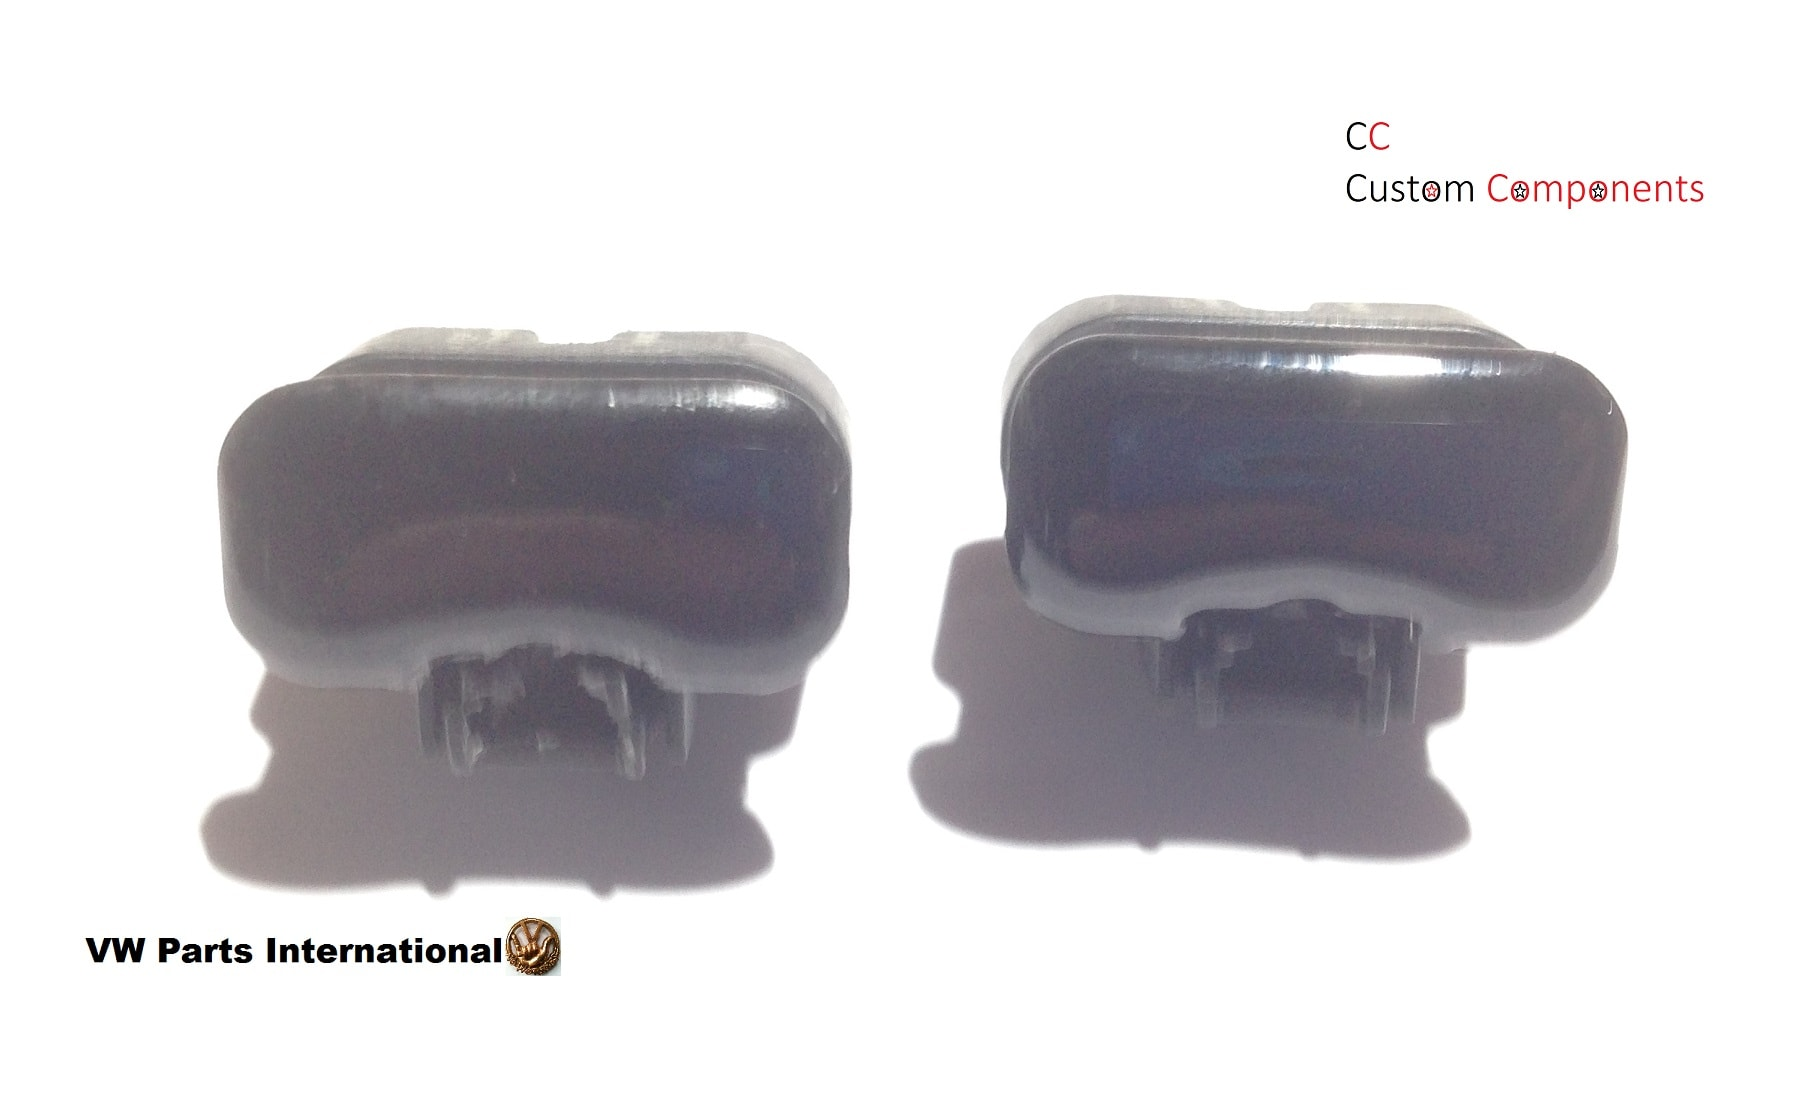 Audi RS3 2018 Exhaust System Valve Protectors Blanking Plugs New Custom Parts